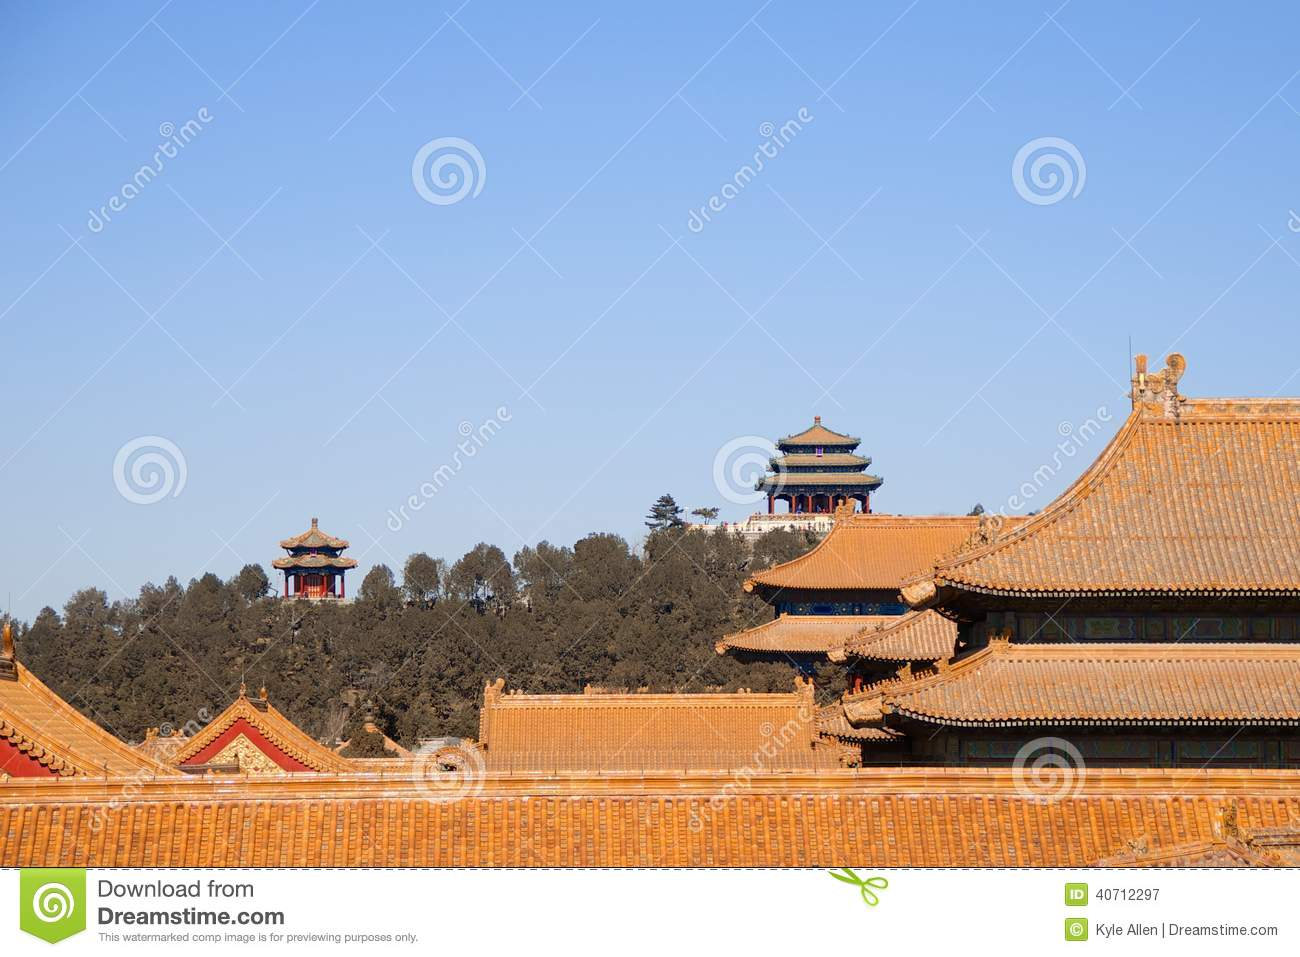 Download Rooftops Of Buildings Within The Forbidden City With Chinese Pagodas In The Background Stock Image - Image of pagoda, building: 40712297